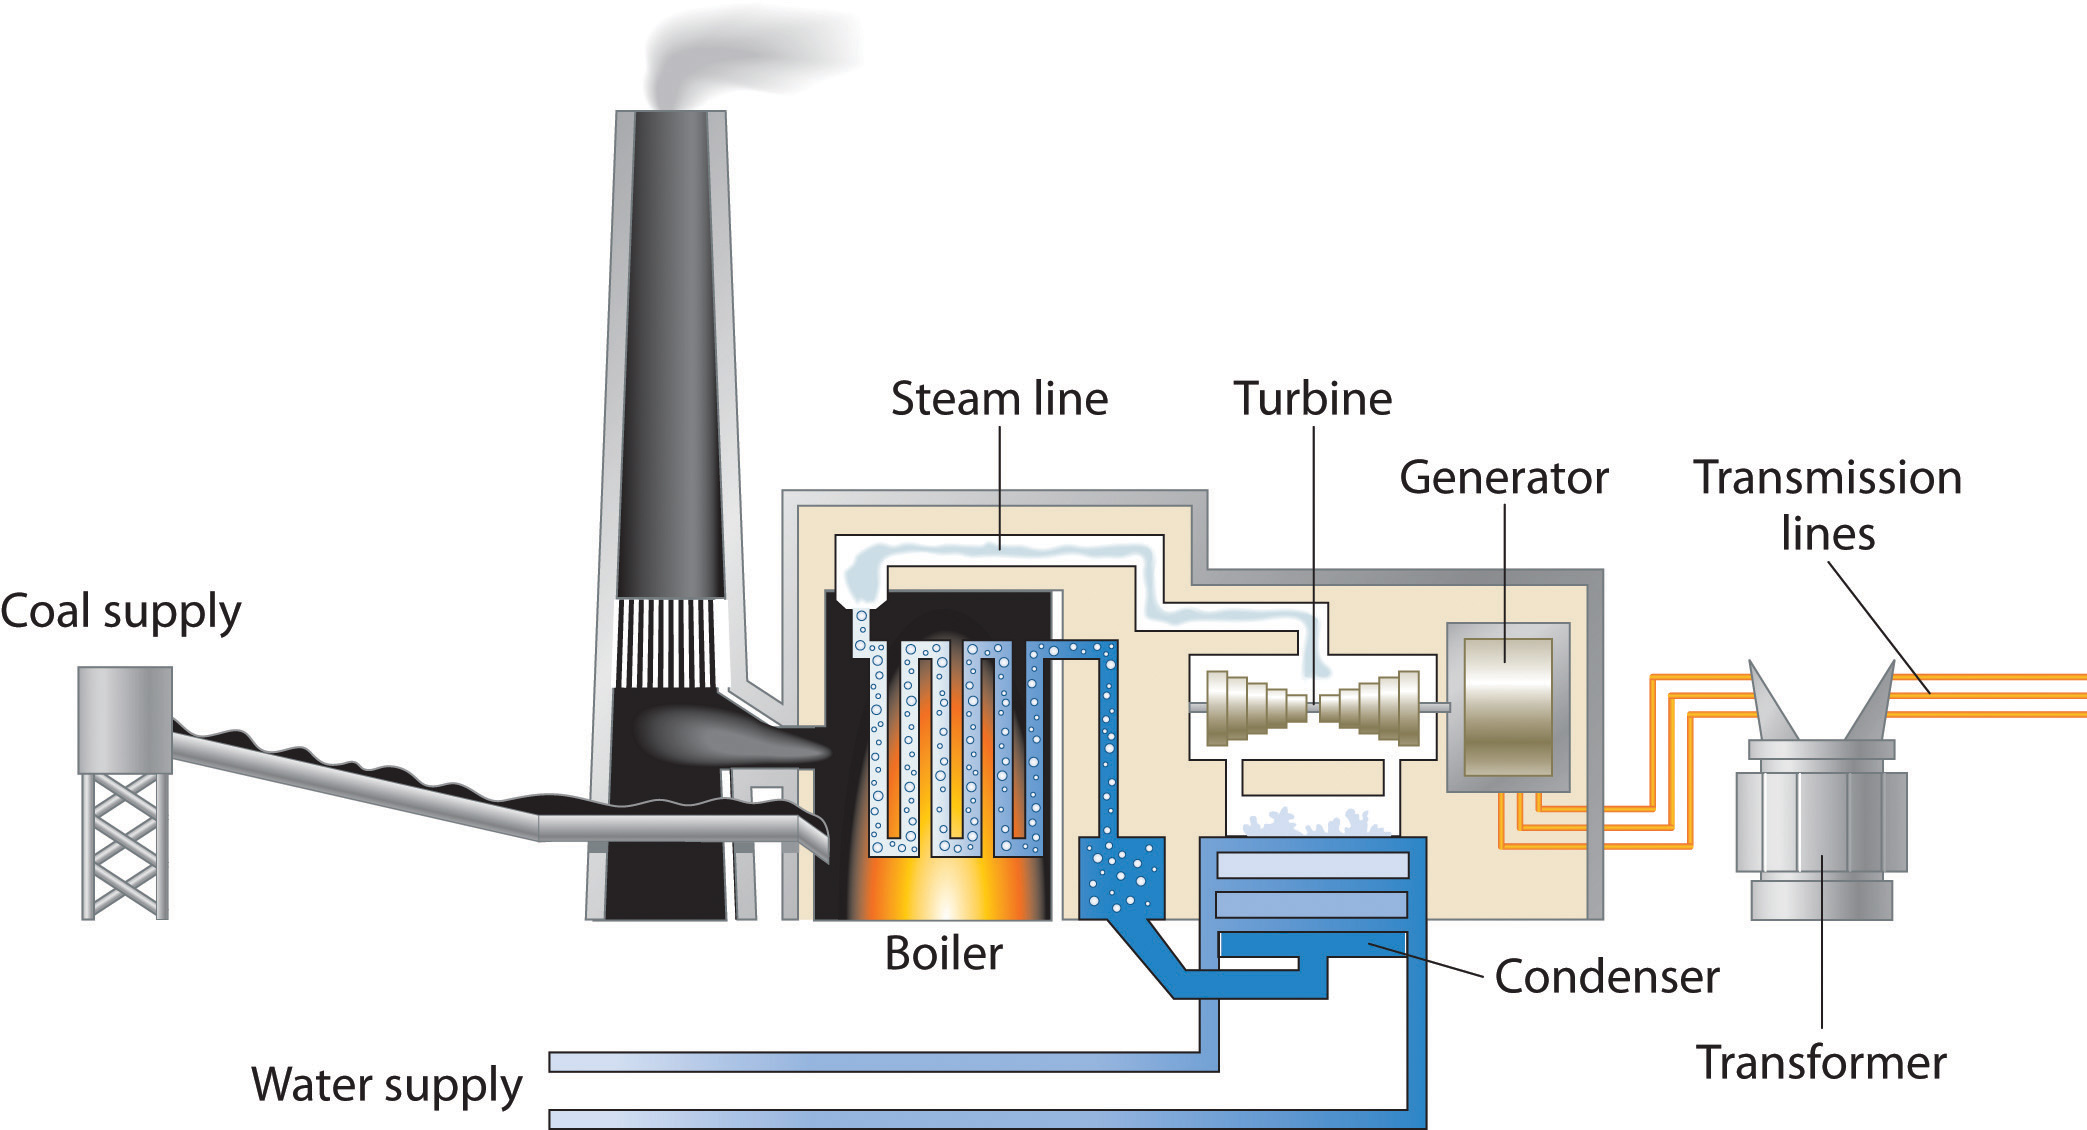 General At Tires >> Energy Sources and the Environment